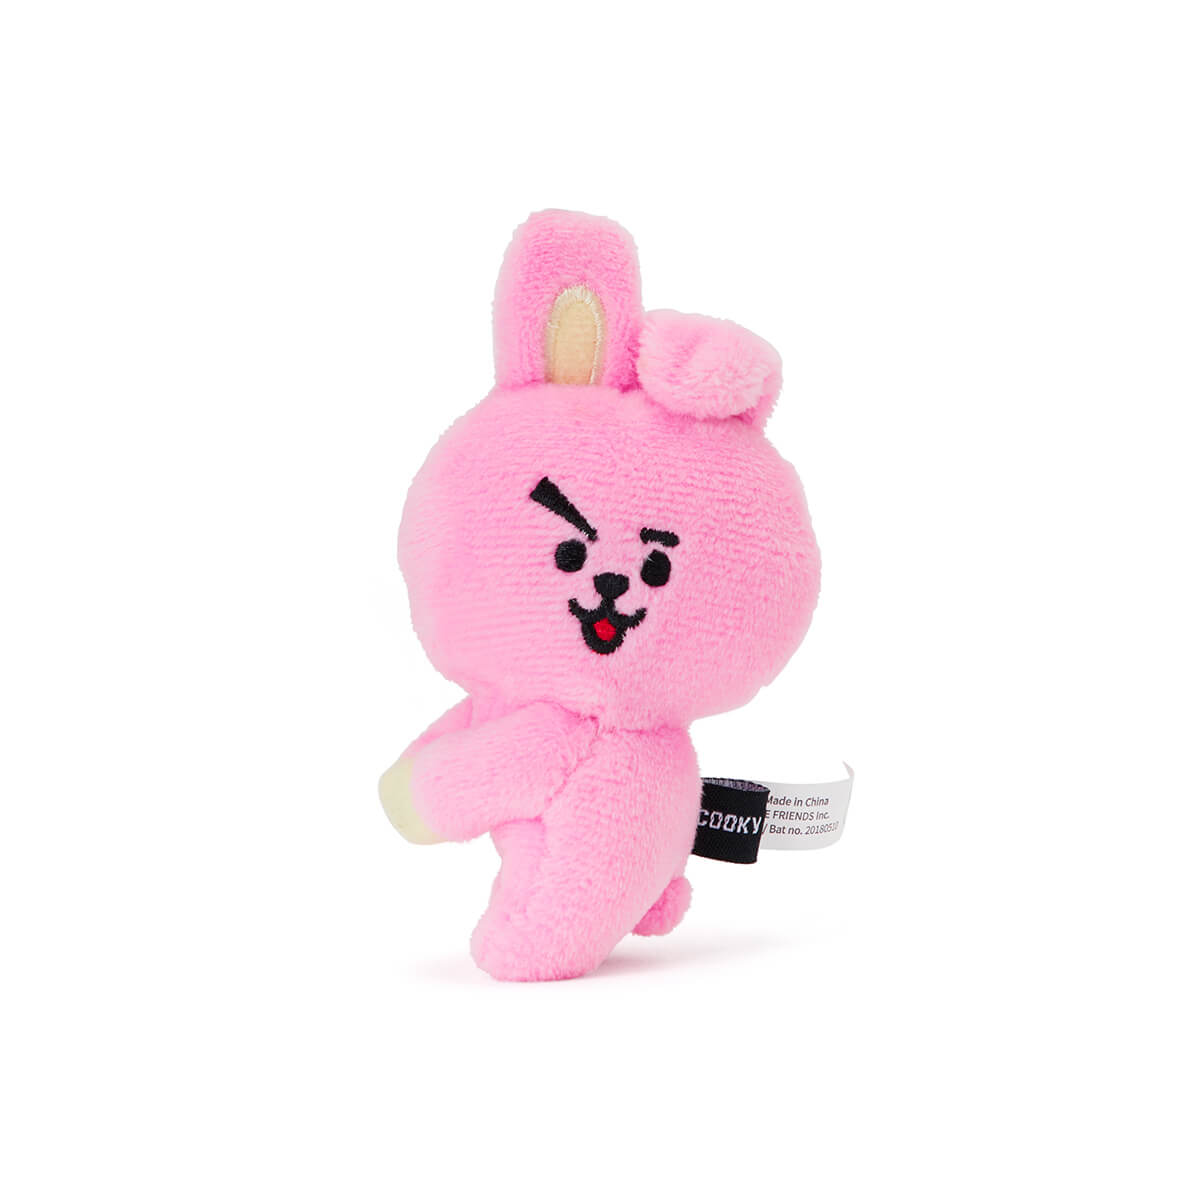 BT21 COOKY Plush Magnet